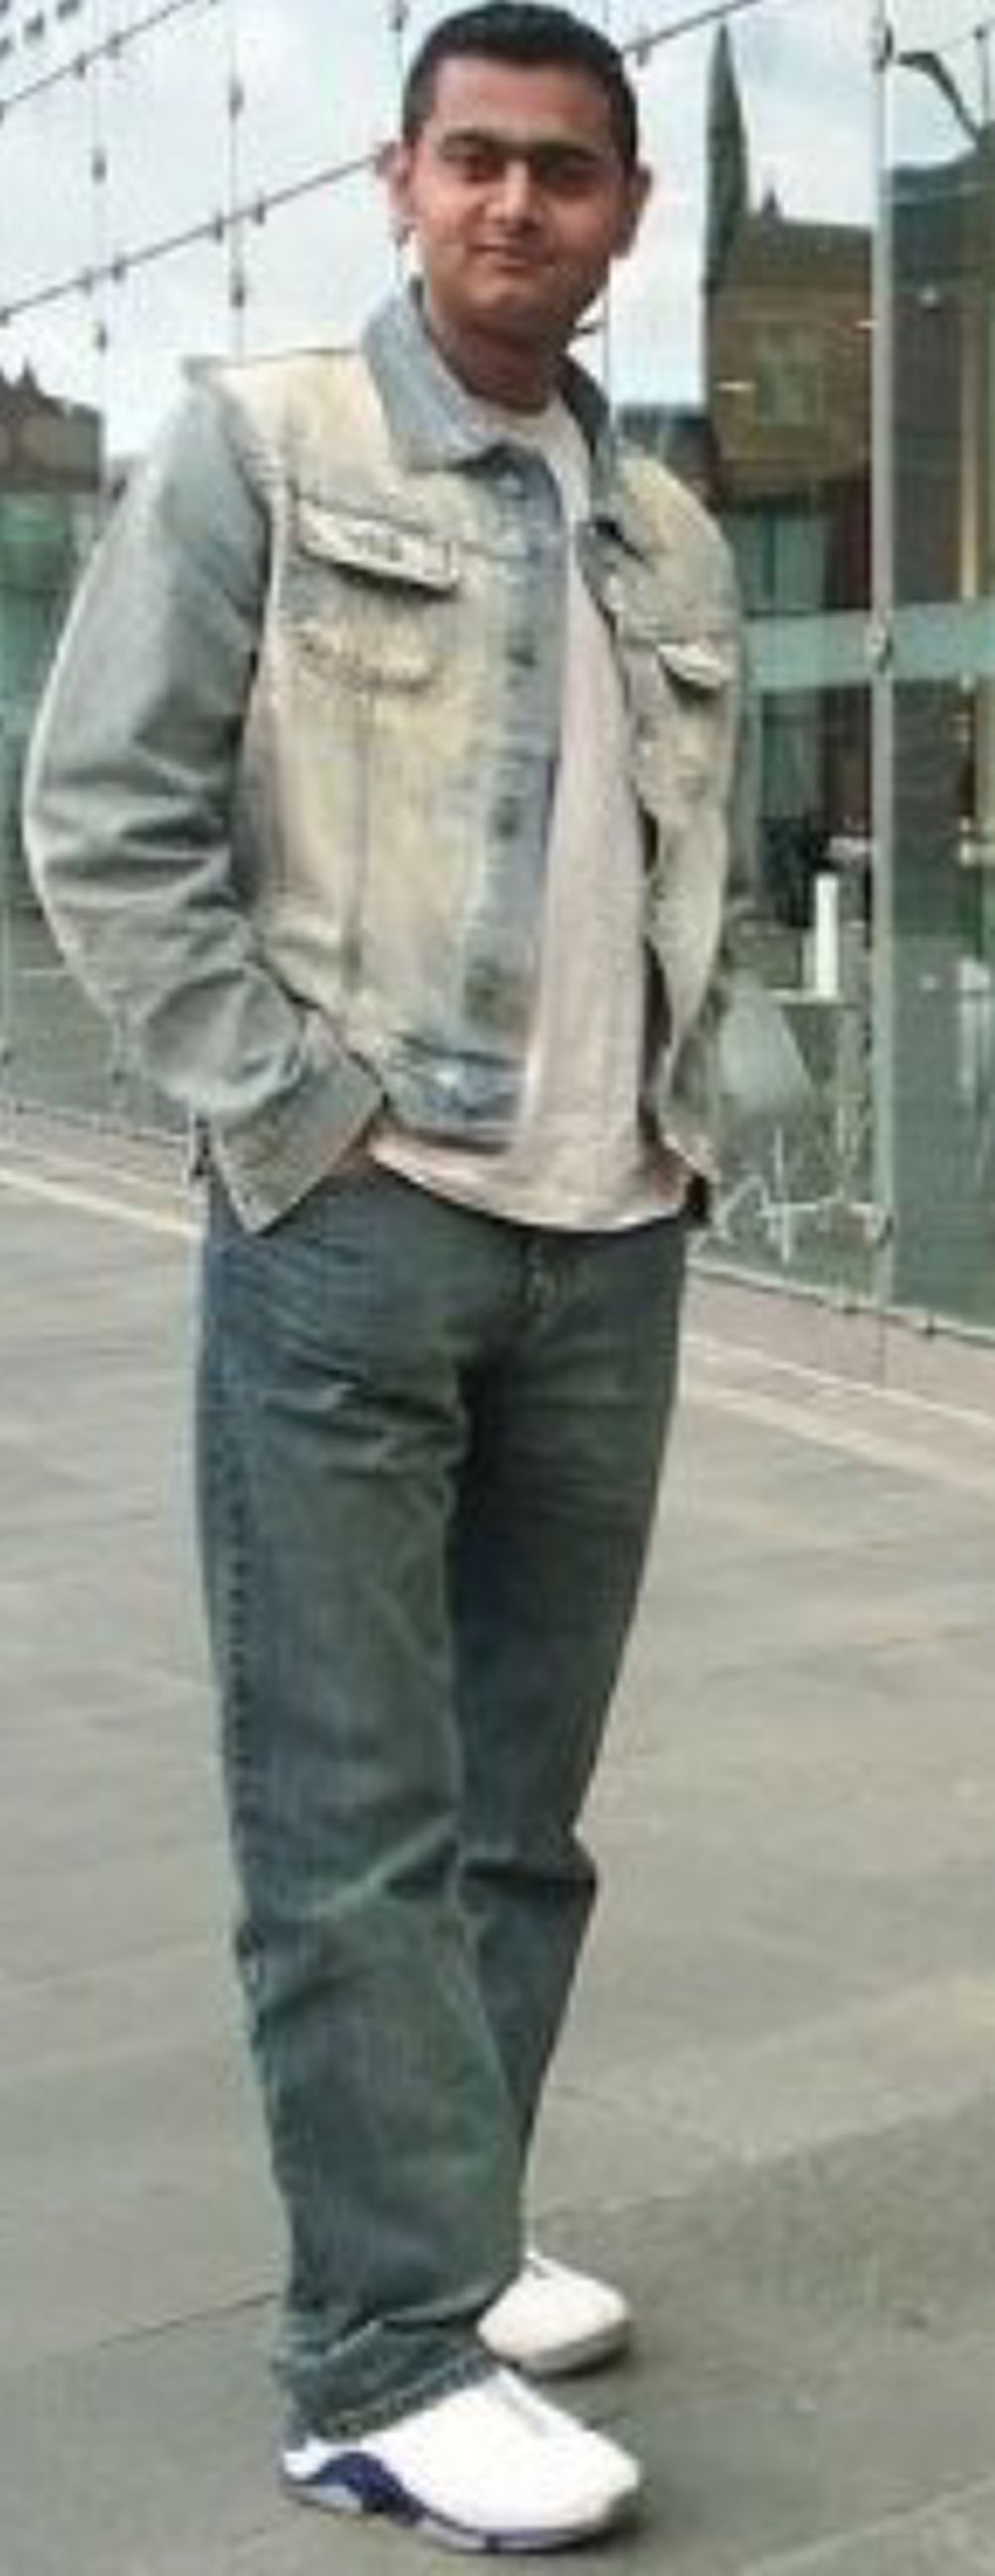 casual clothing, lifestyles, standing, person, full length, young adult, front view, leisure activity, jacket, three quarter length, young men, warm clothing, built structure, architecture, jeans, focus on foreground, holding, hands in pockets